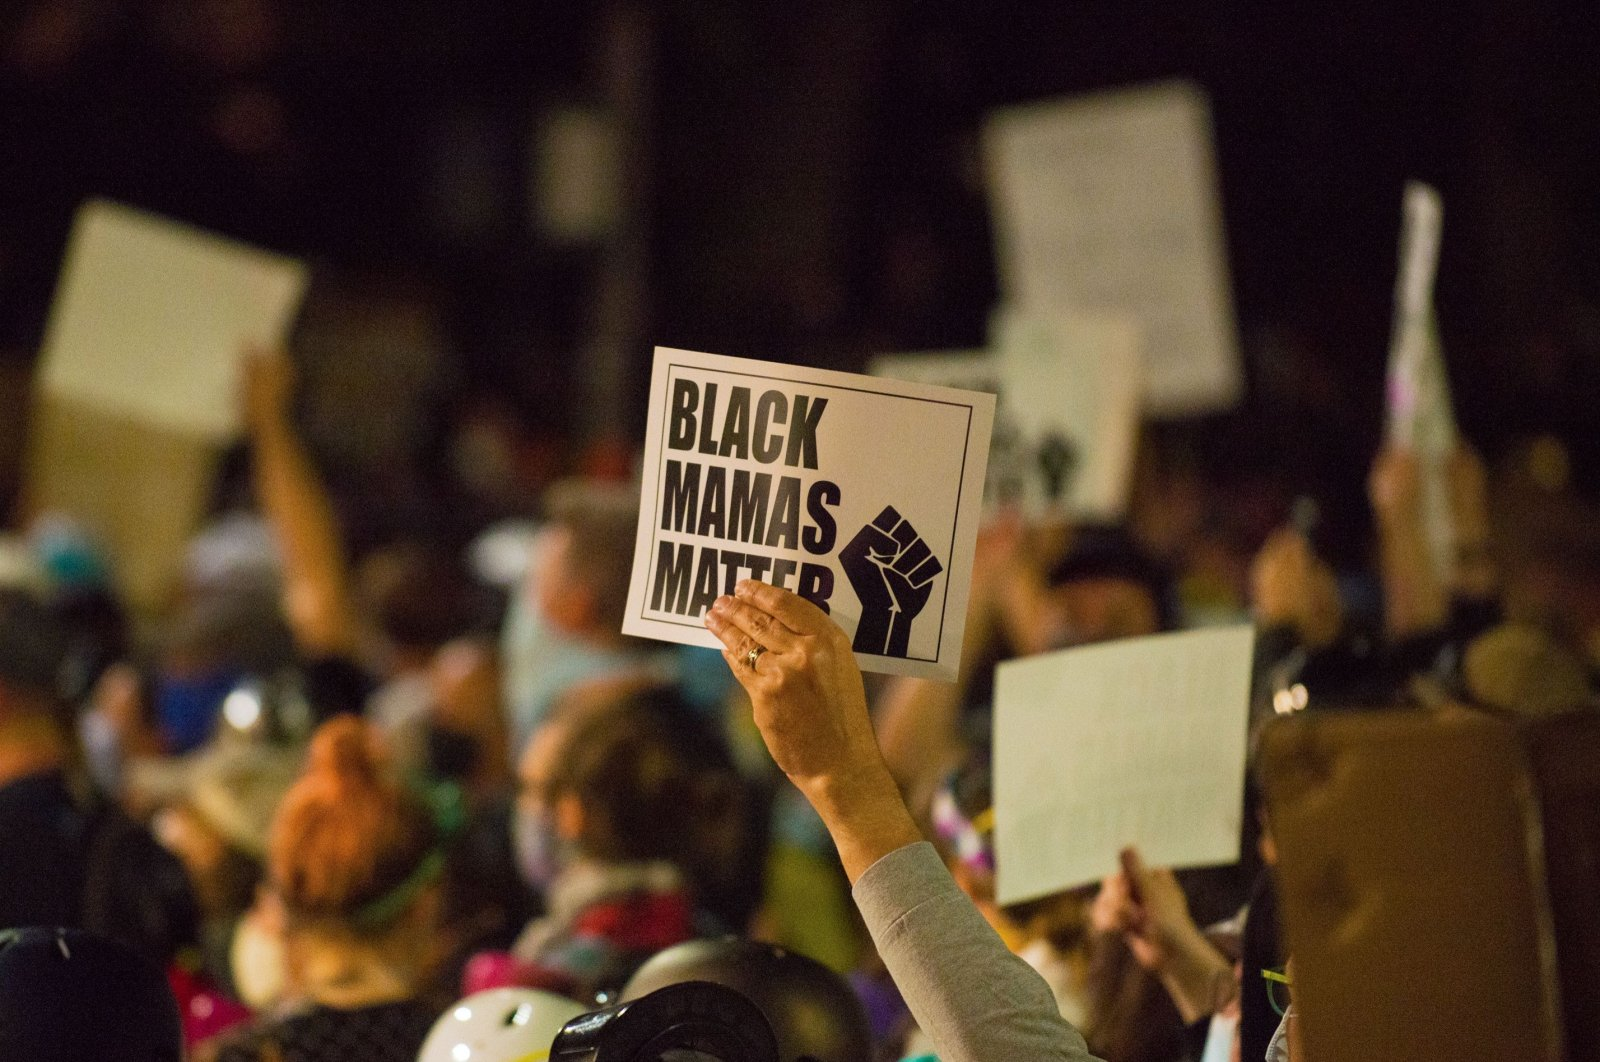 Activists hold up signs as they take part in a rally against police brutality in Portland, Oregon late on July 24, 2020. (AFP Photo)